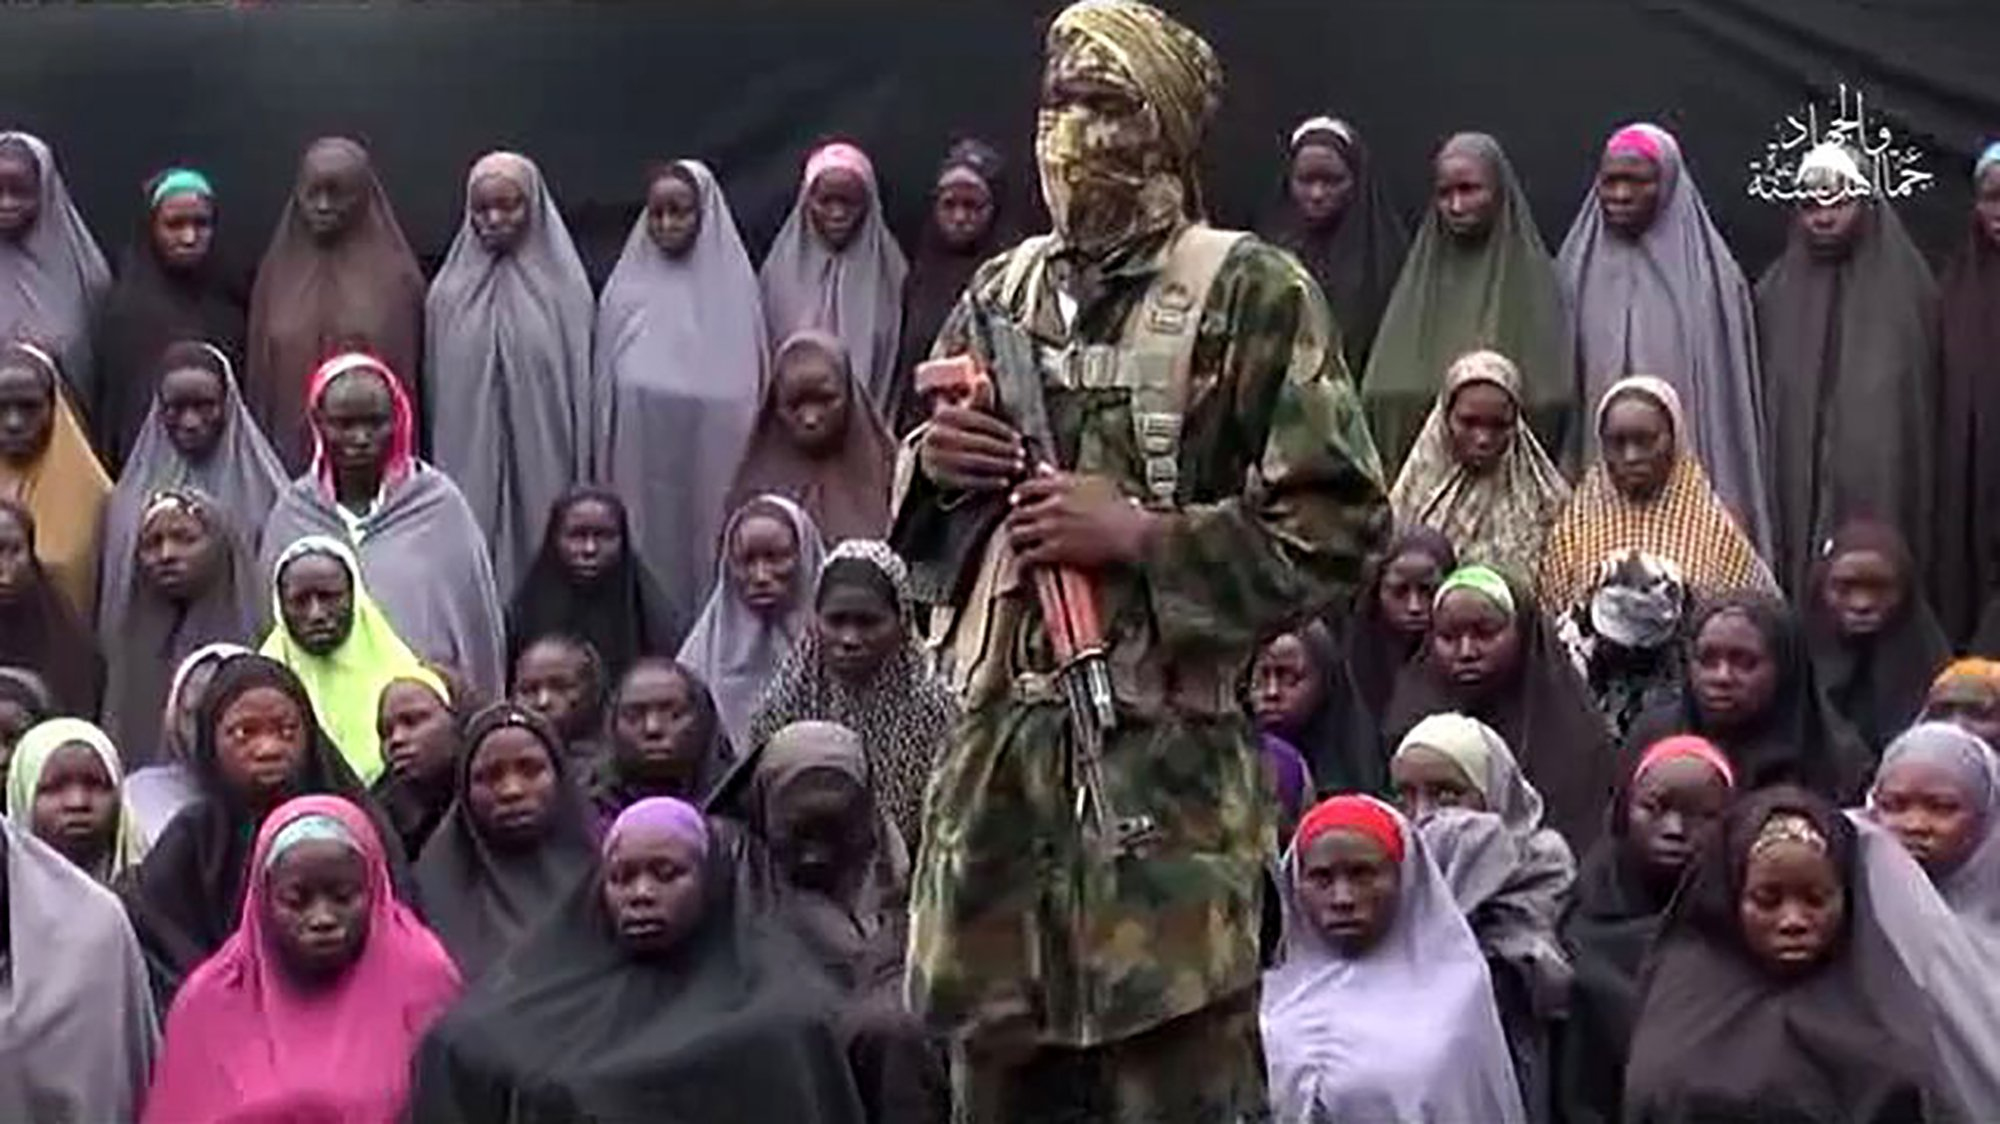 "(FILES) This video grab image created on August 14, 2016 taken from a video released on youtube purportedly by Islamist group Boko Haram showing what is claimed to be one of the groups fighters at an undisclosed location standing in front of girls allegedly kidnapped from Chibok in April 2014. A Nigerian government official announced on October 13, 2016 that Boko Haram had released 21 of the 276 schoolgirls kidnapped by the group from Chibok in April 2014 . / AFP PHOTO / HO / RESTRICTED TO EDITORIAL USE - MANDATORY CREDIT ""AFP PHOTO / BOKO HARAM"" - NO MARKETING NO ADVERTISING CAMPAIGNS - DISTRIBUTED AS A SERVICE TO CLIENTS HO/AFP/Getty Images"